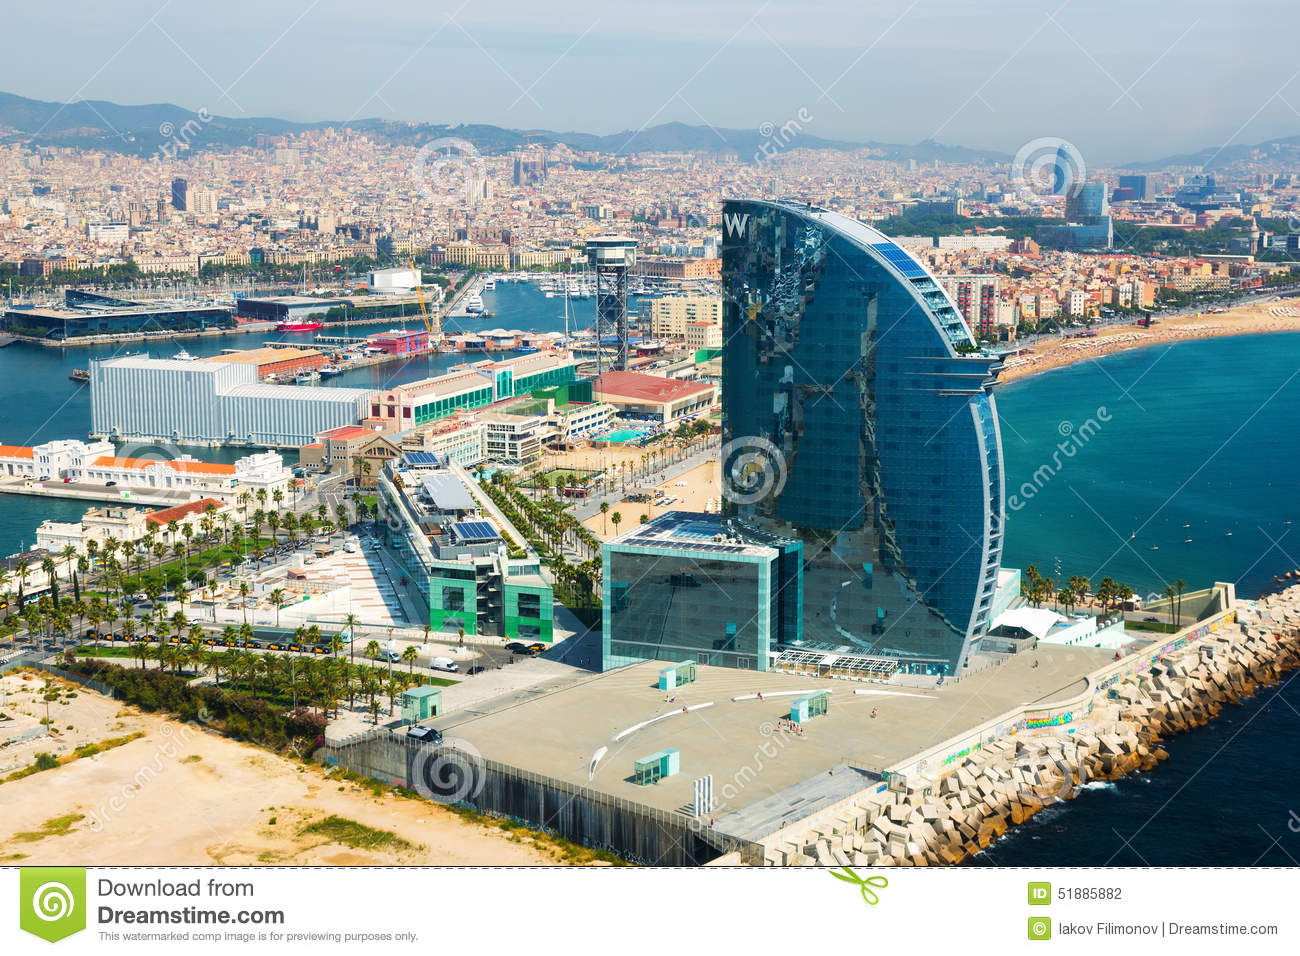 Aerial view of Barceloneta from sea side. Barcelona